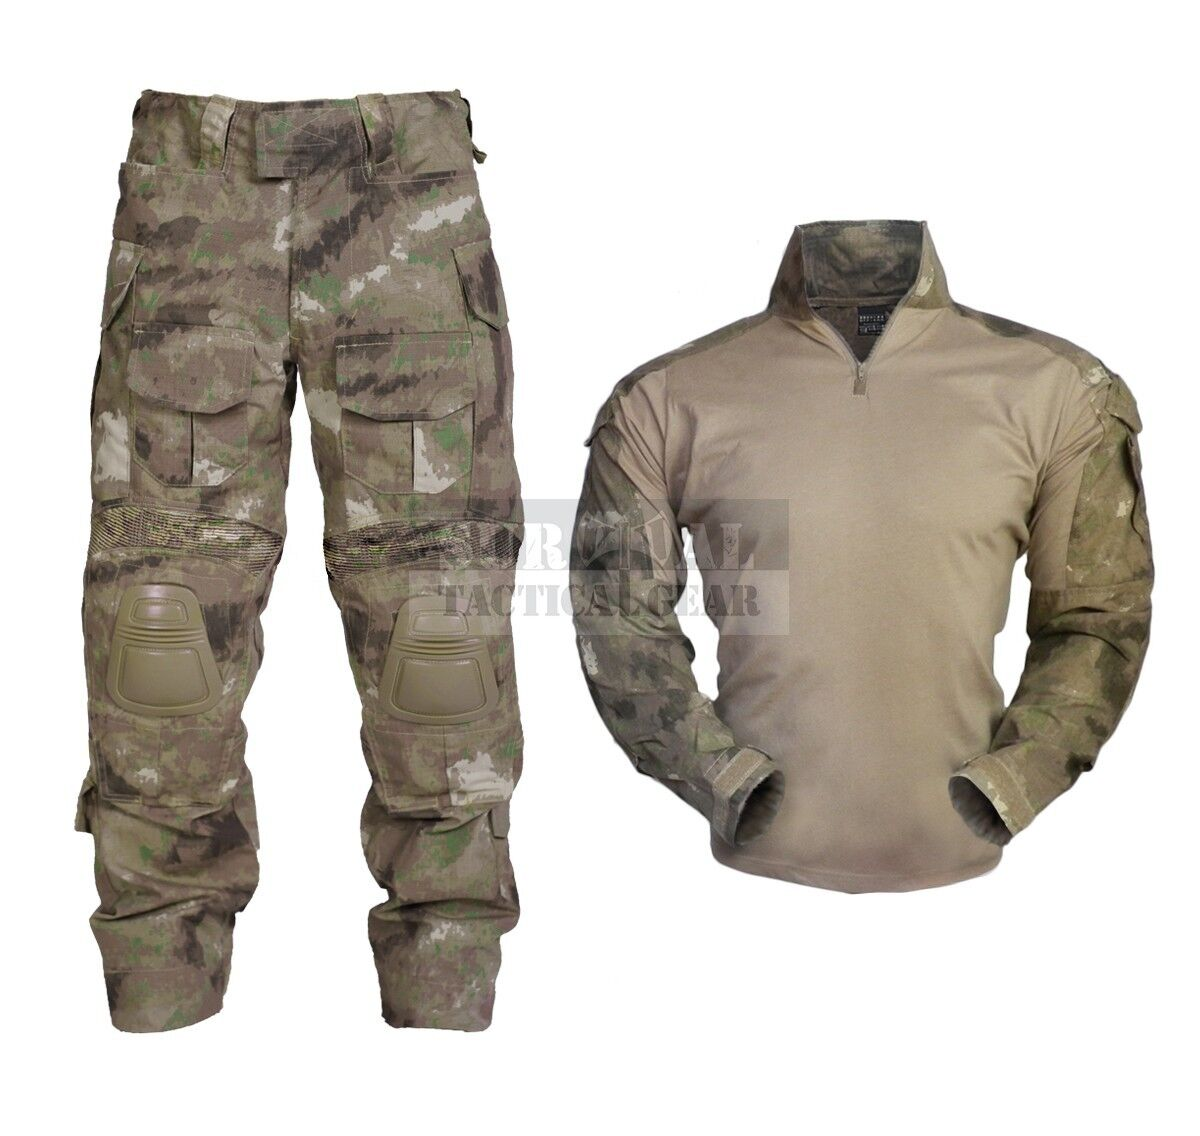 Military Tactical Clothing Army Combat Apparel  Camouflage Uniform Knee Elbow Pad  promotions